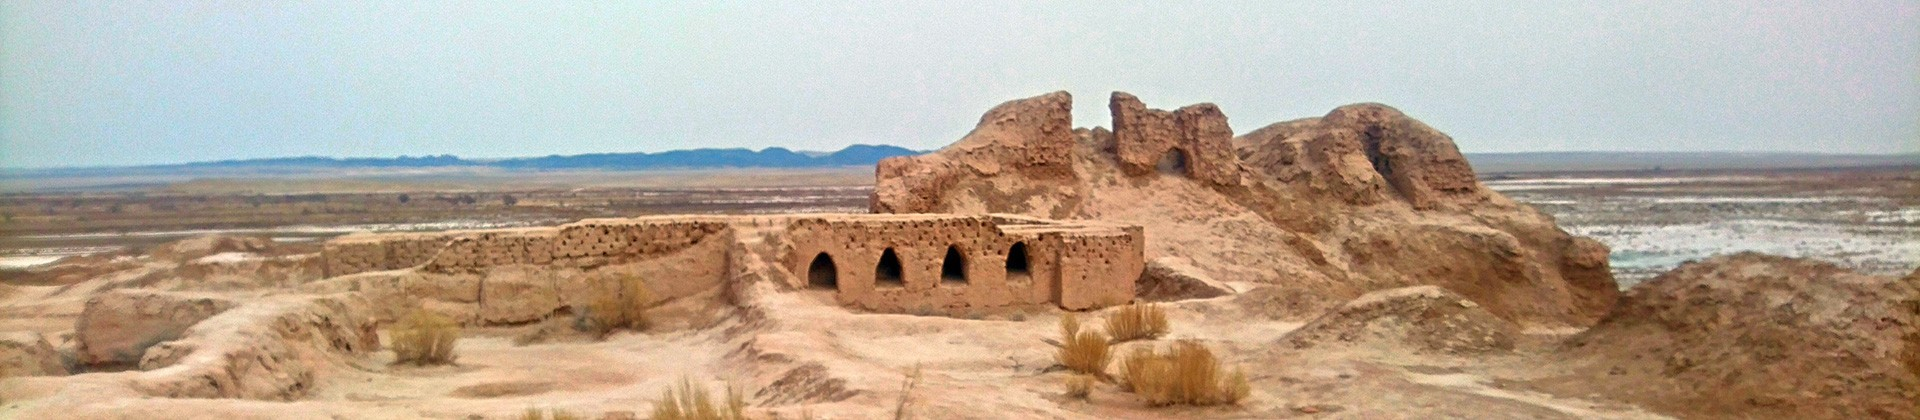 Ruins of ancient Khorezm in the Kyzylkum desert - 6 fortresses - 1